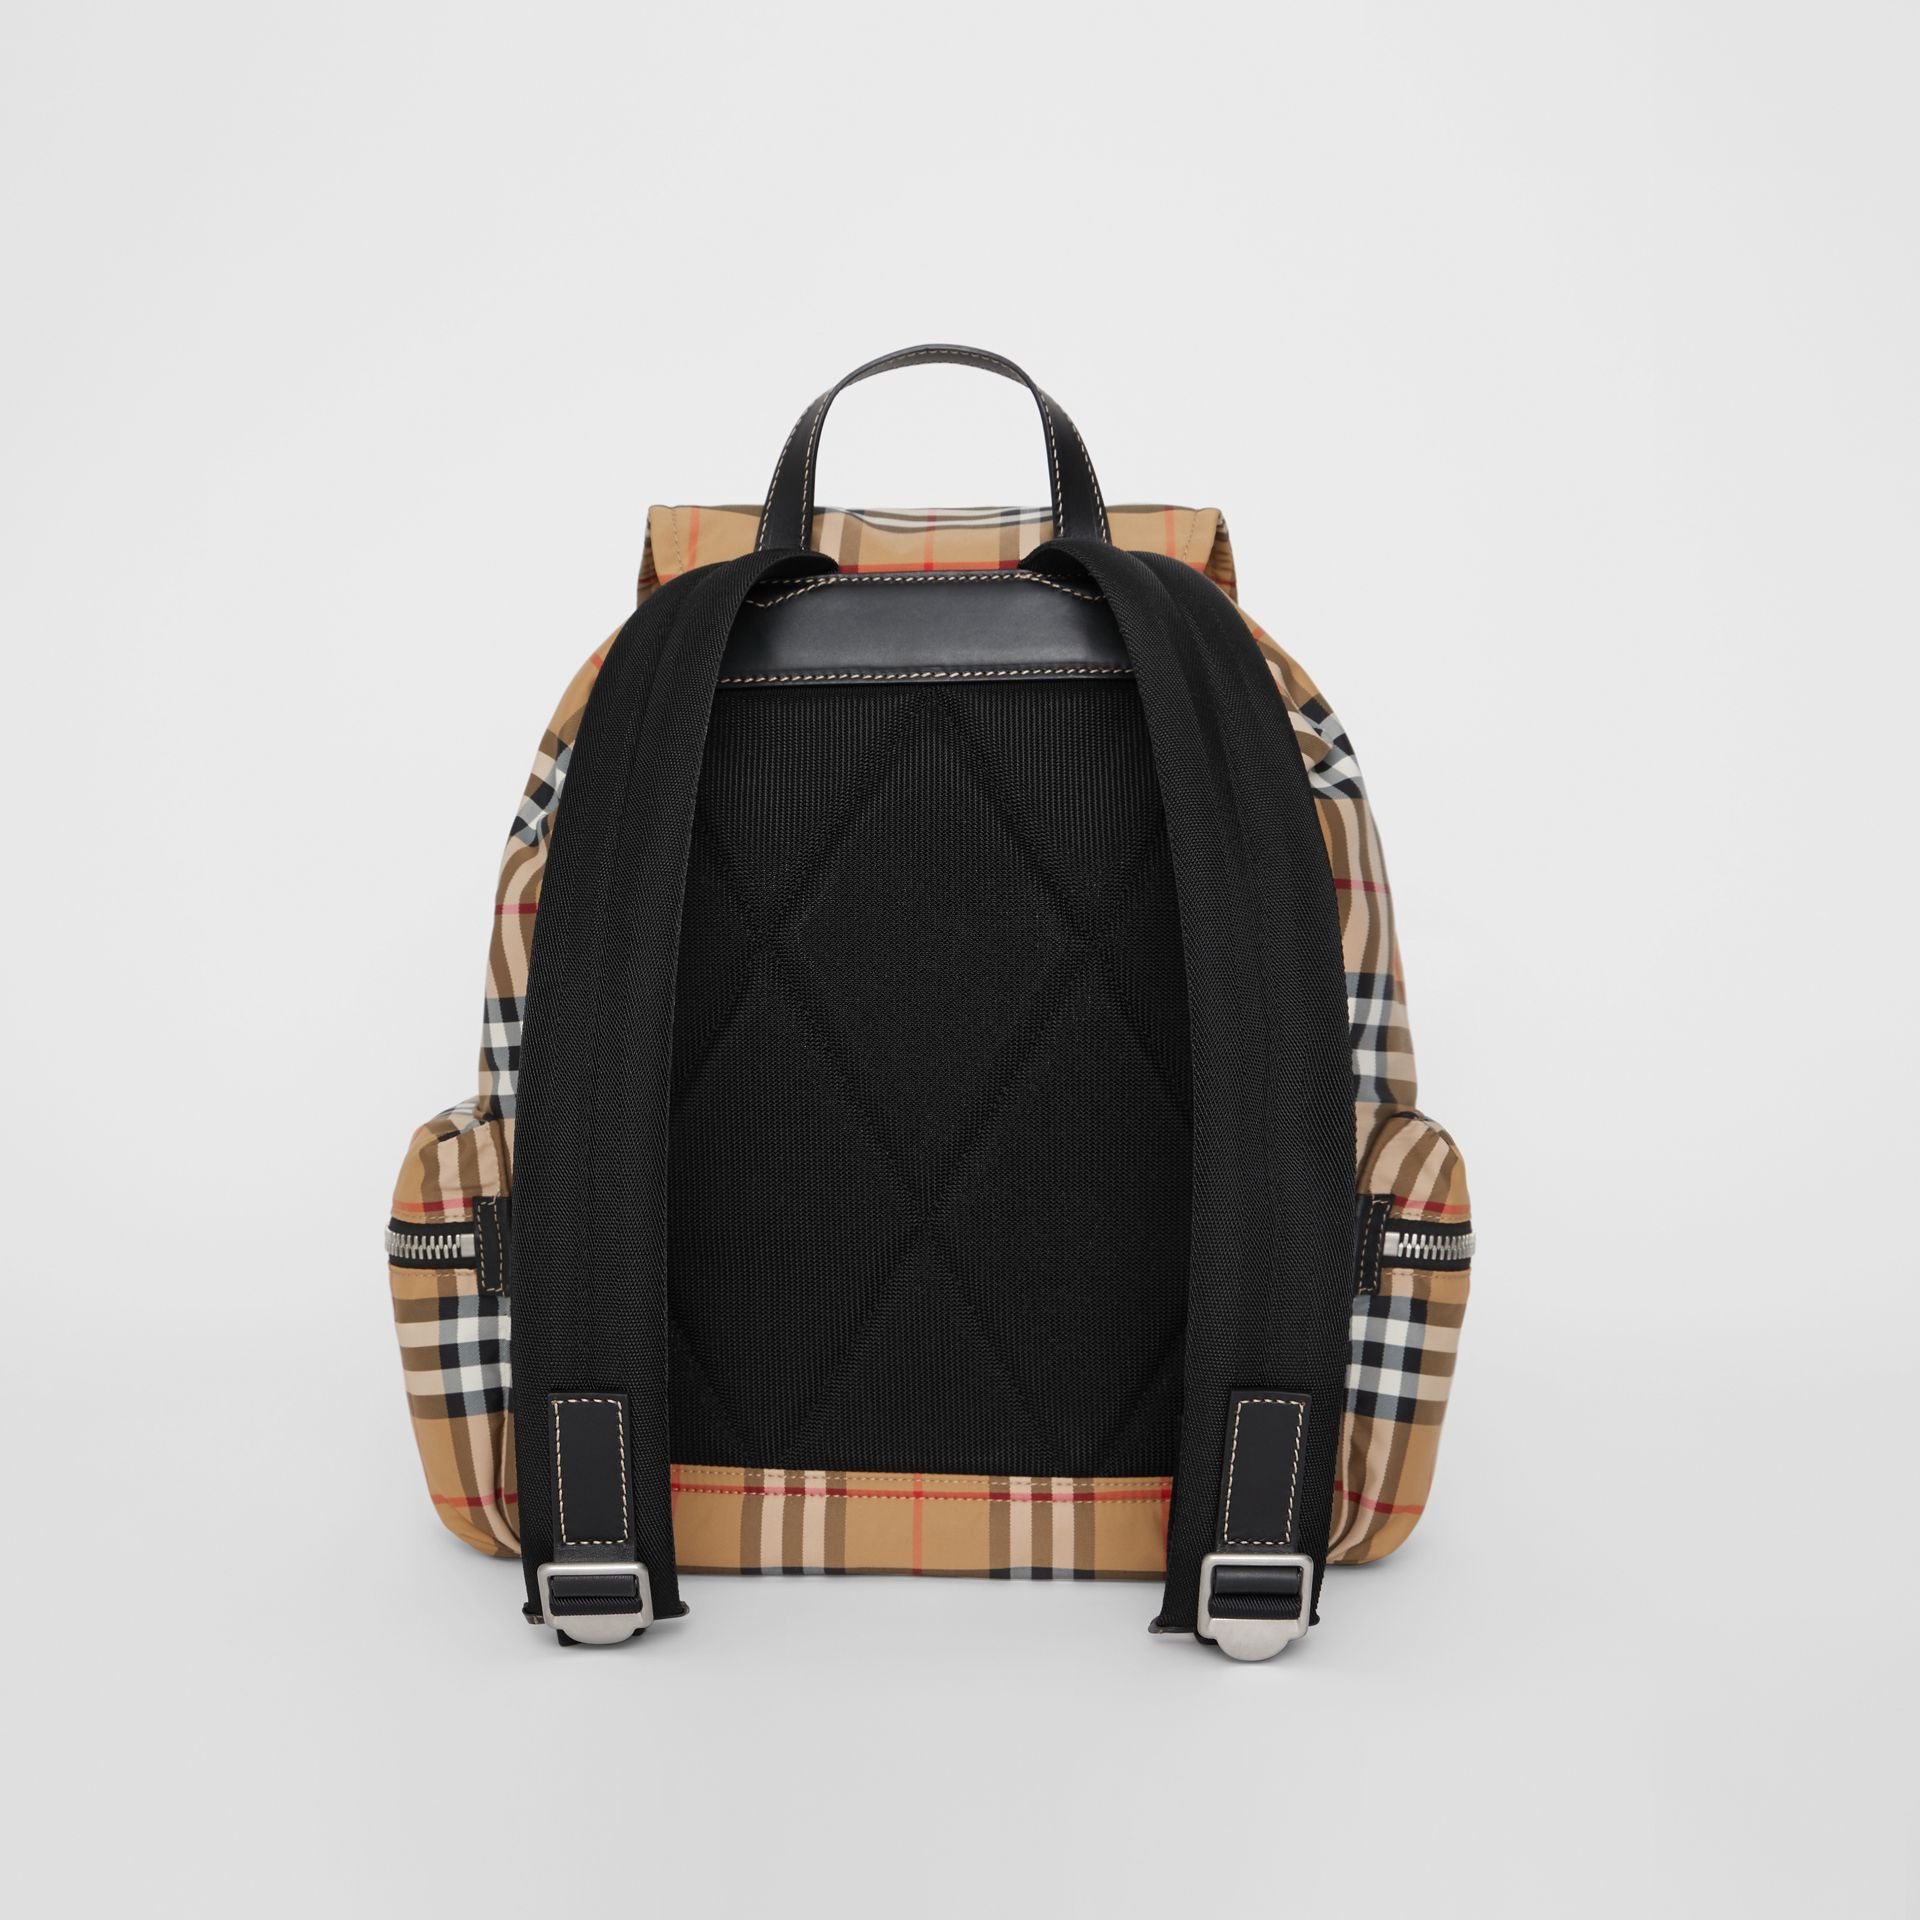 Grand sac The Rucksack en nylon à motif Vintage check (Jaune Antique) - Homme | Burberry - photo de la galerie 7